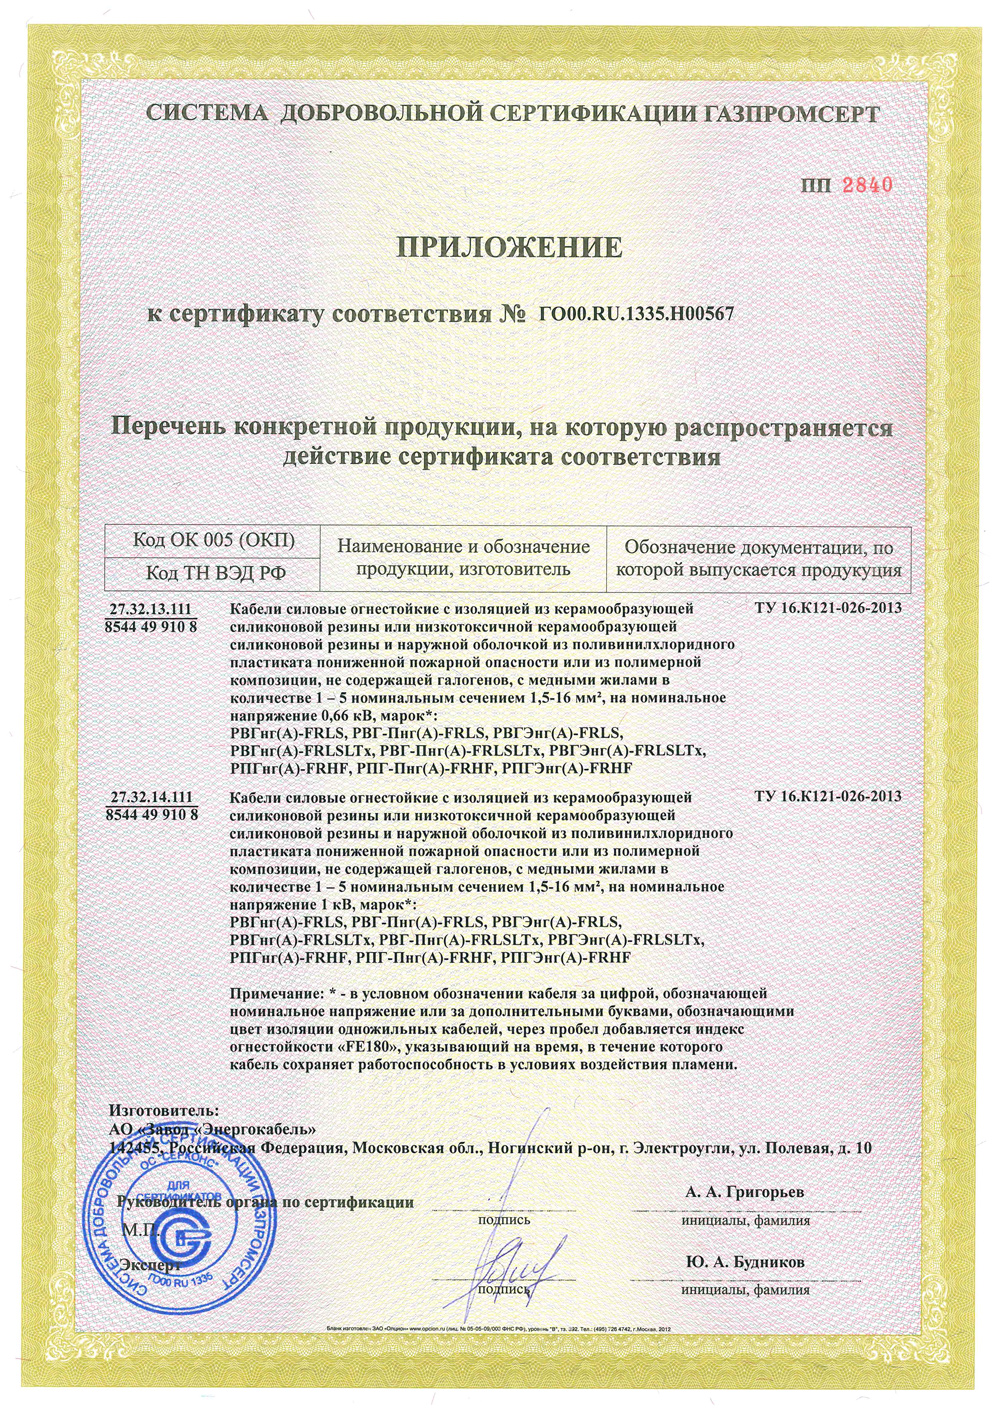 The appendix to the certificate of Conformity № ГО00.RU.1335.Н00567.